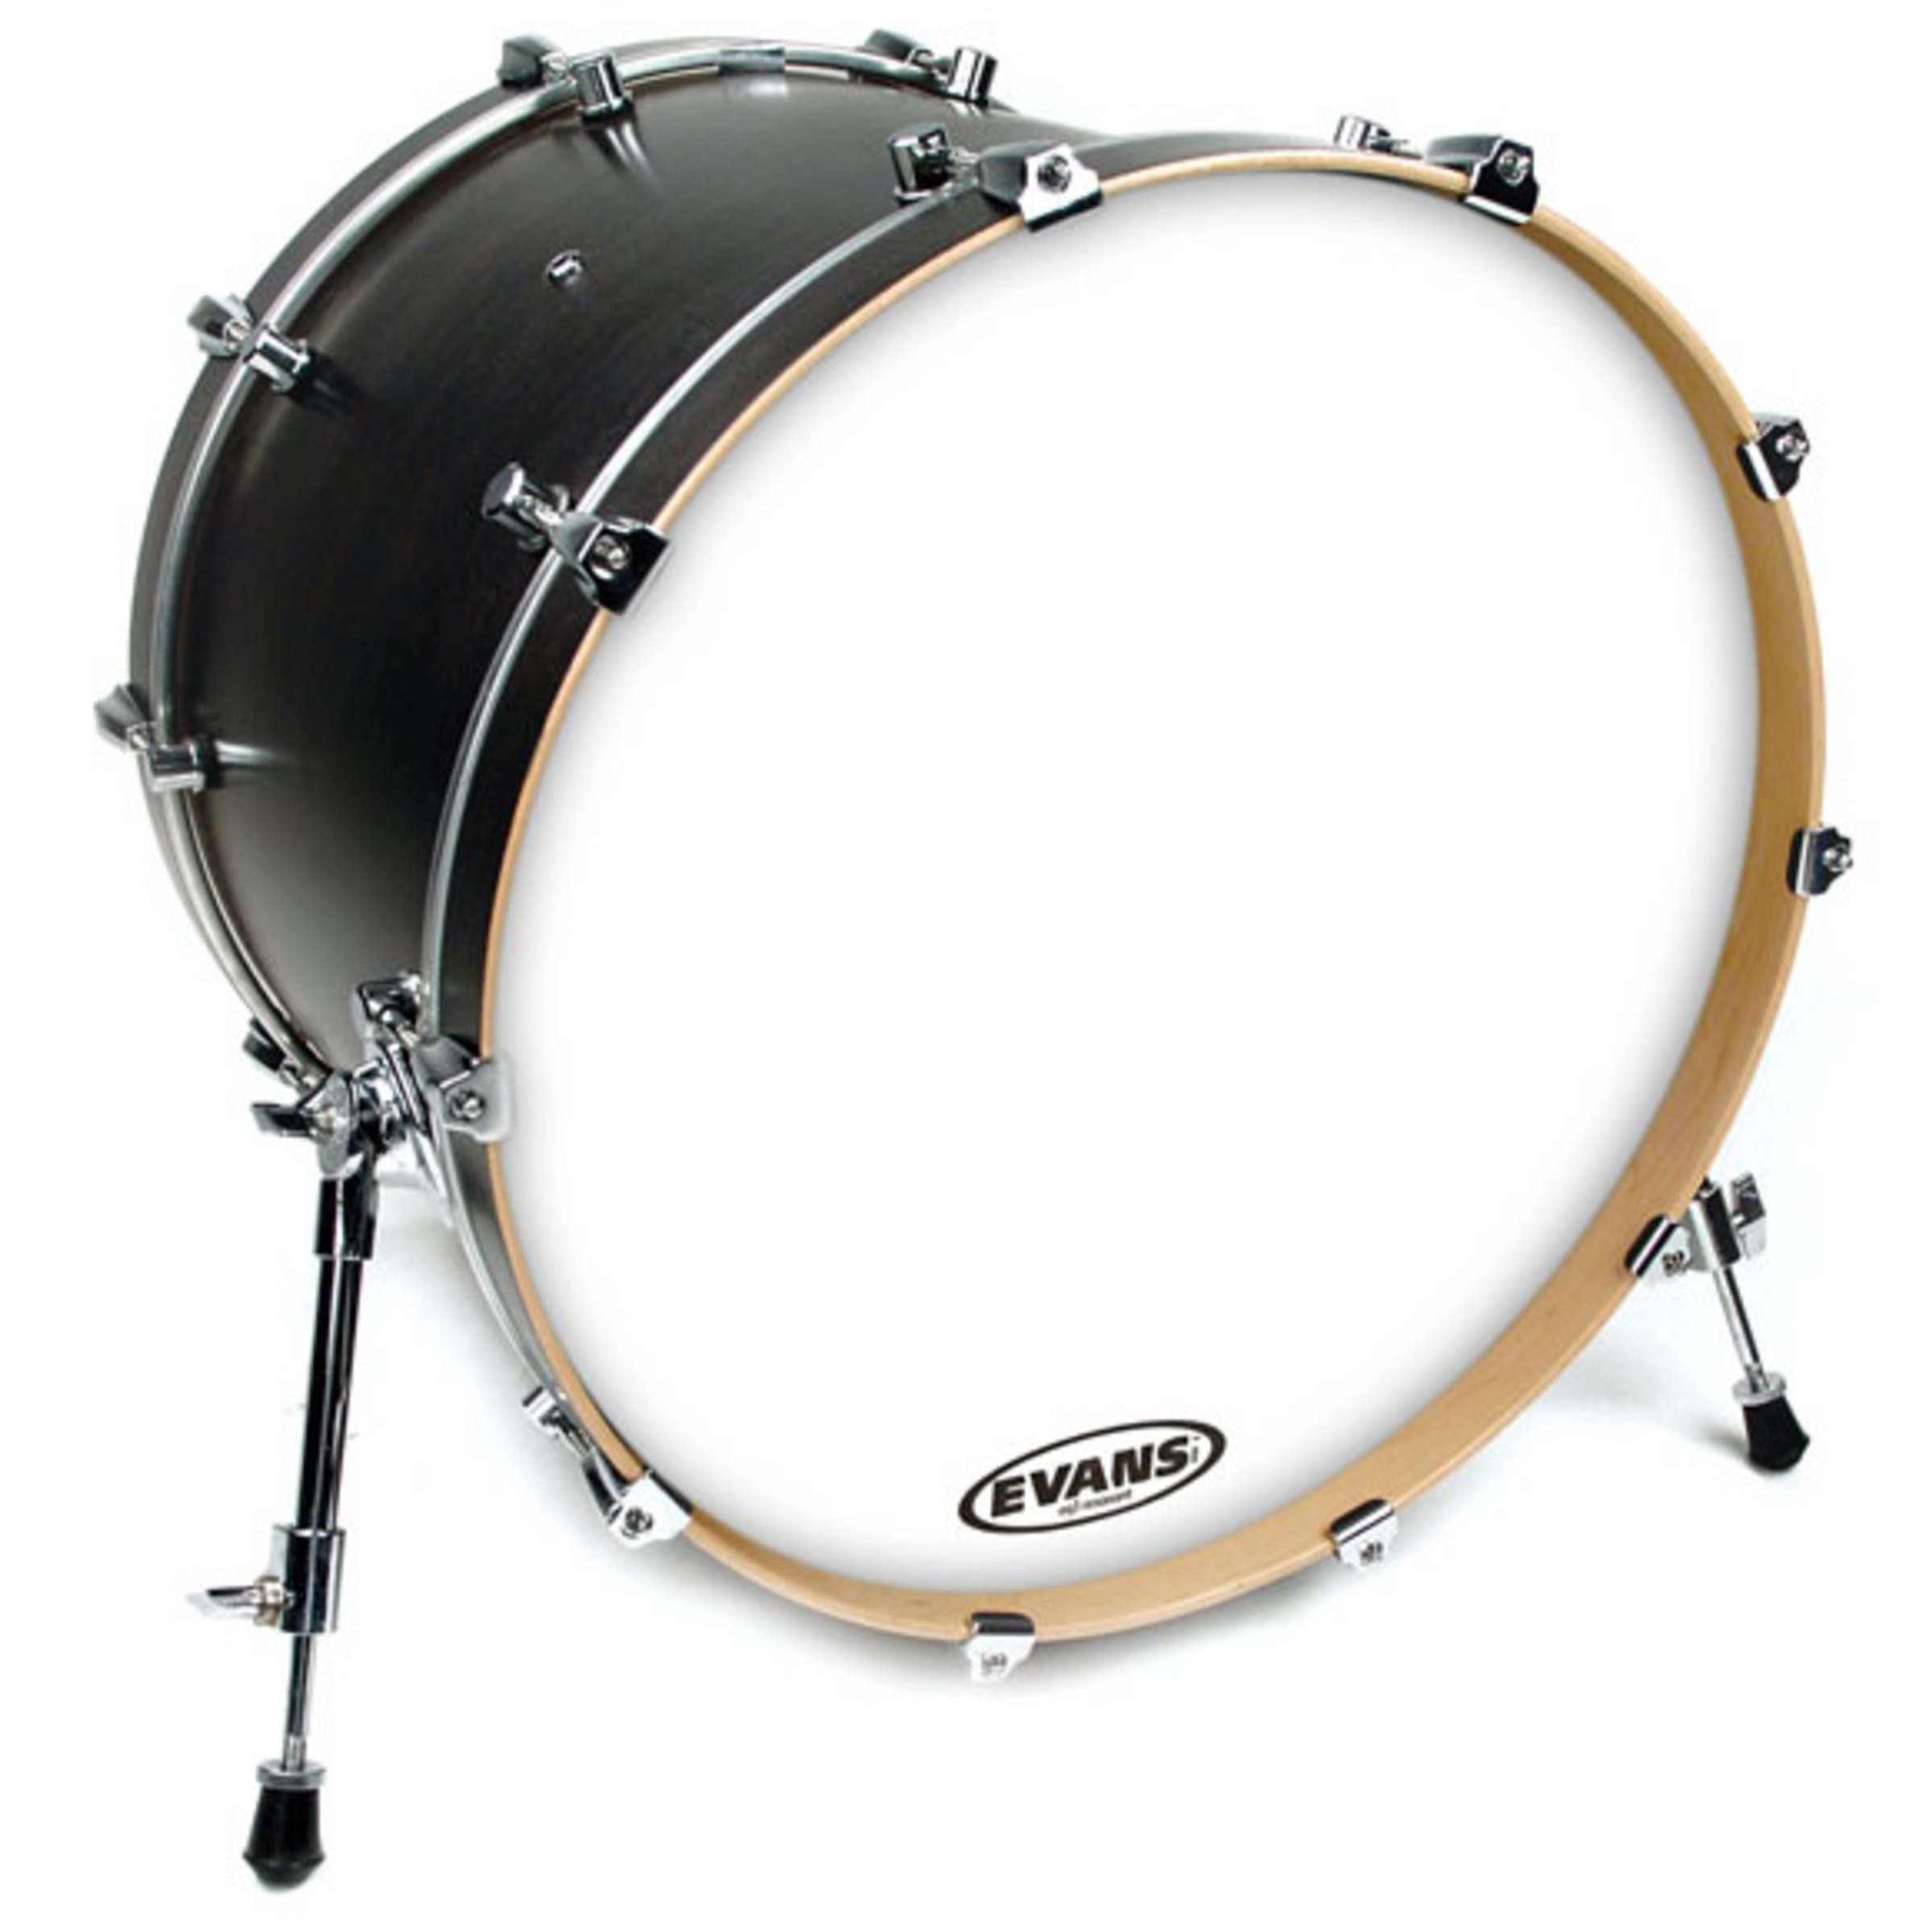 evans eq3 resonant coated white bass drum head no port giggear. Black Bedroom Furniture Sets. Home Design Ideas